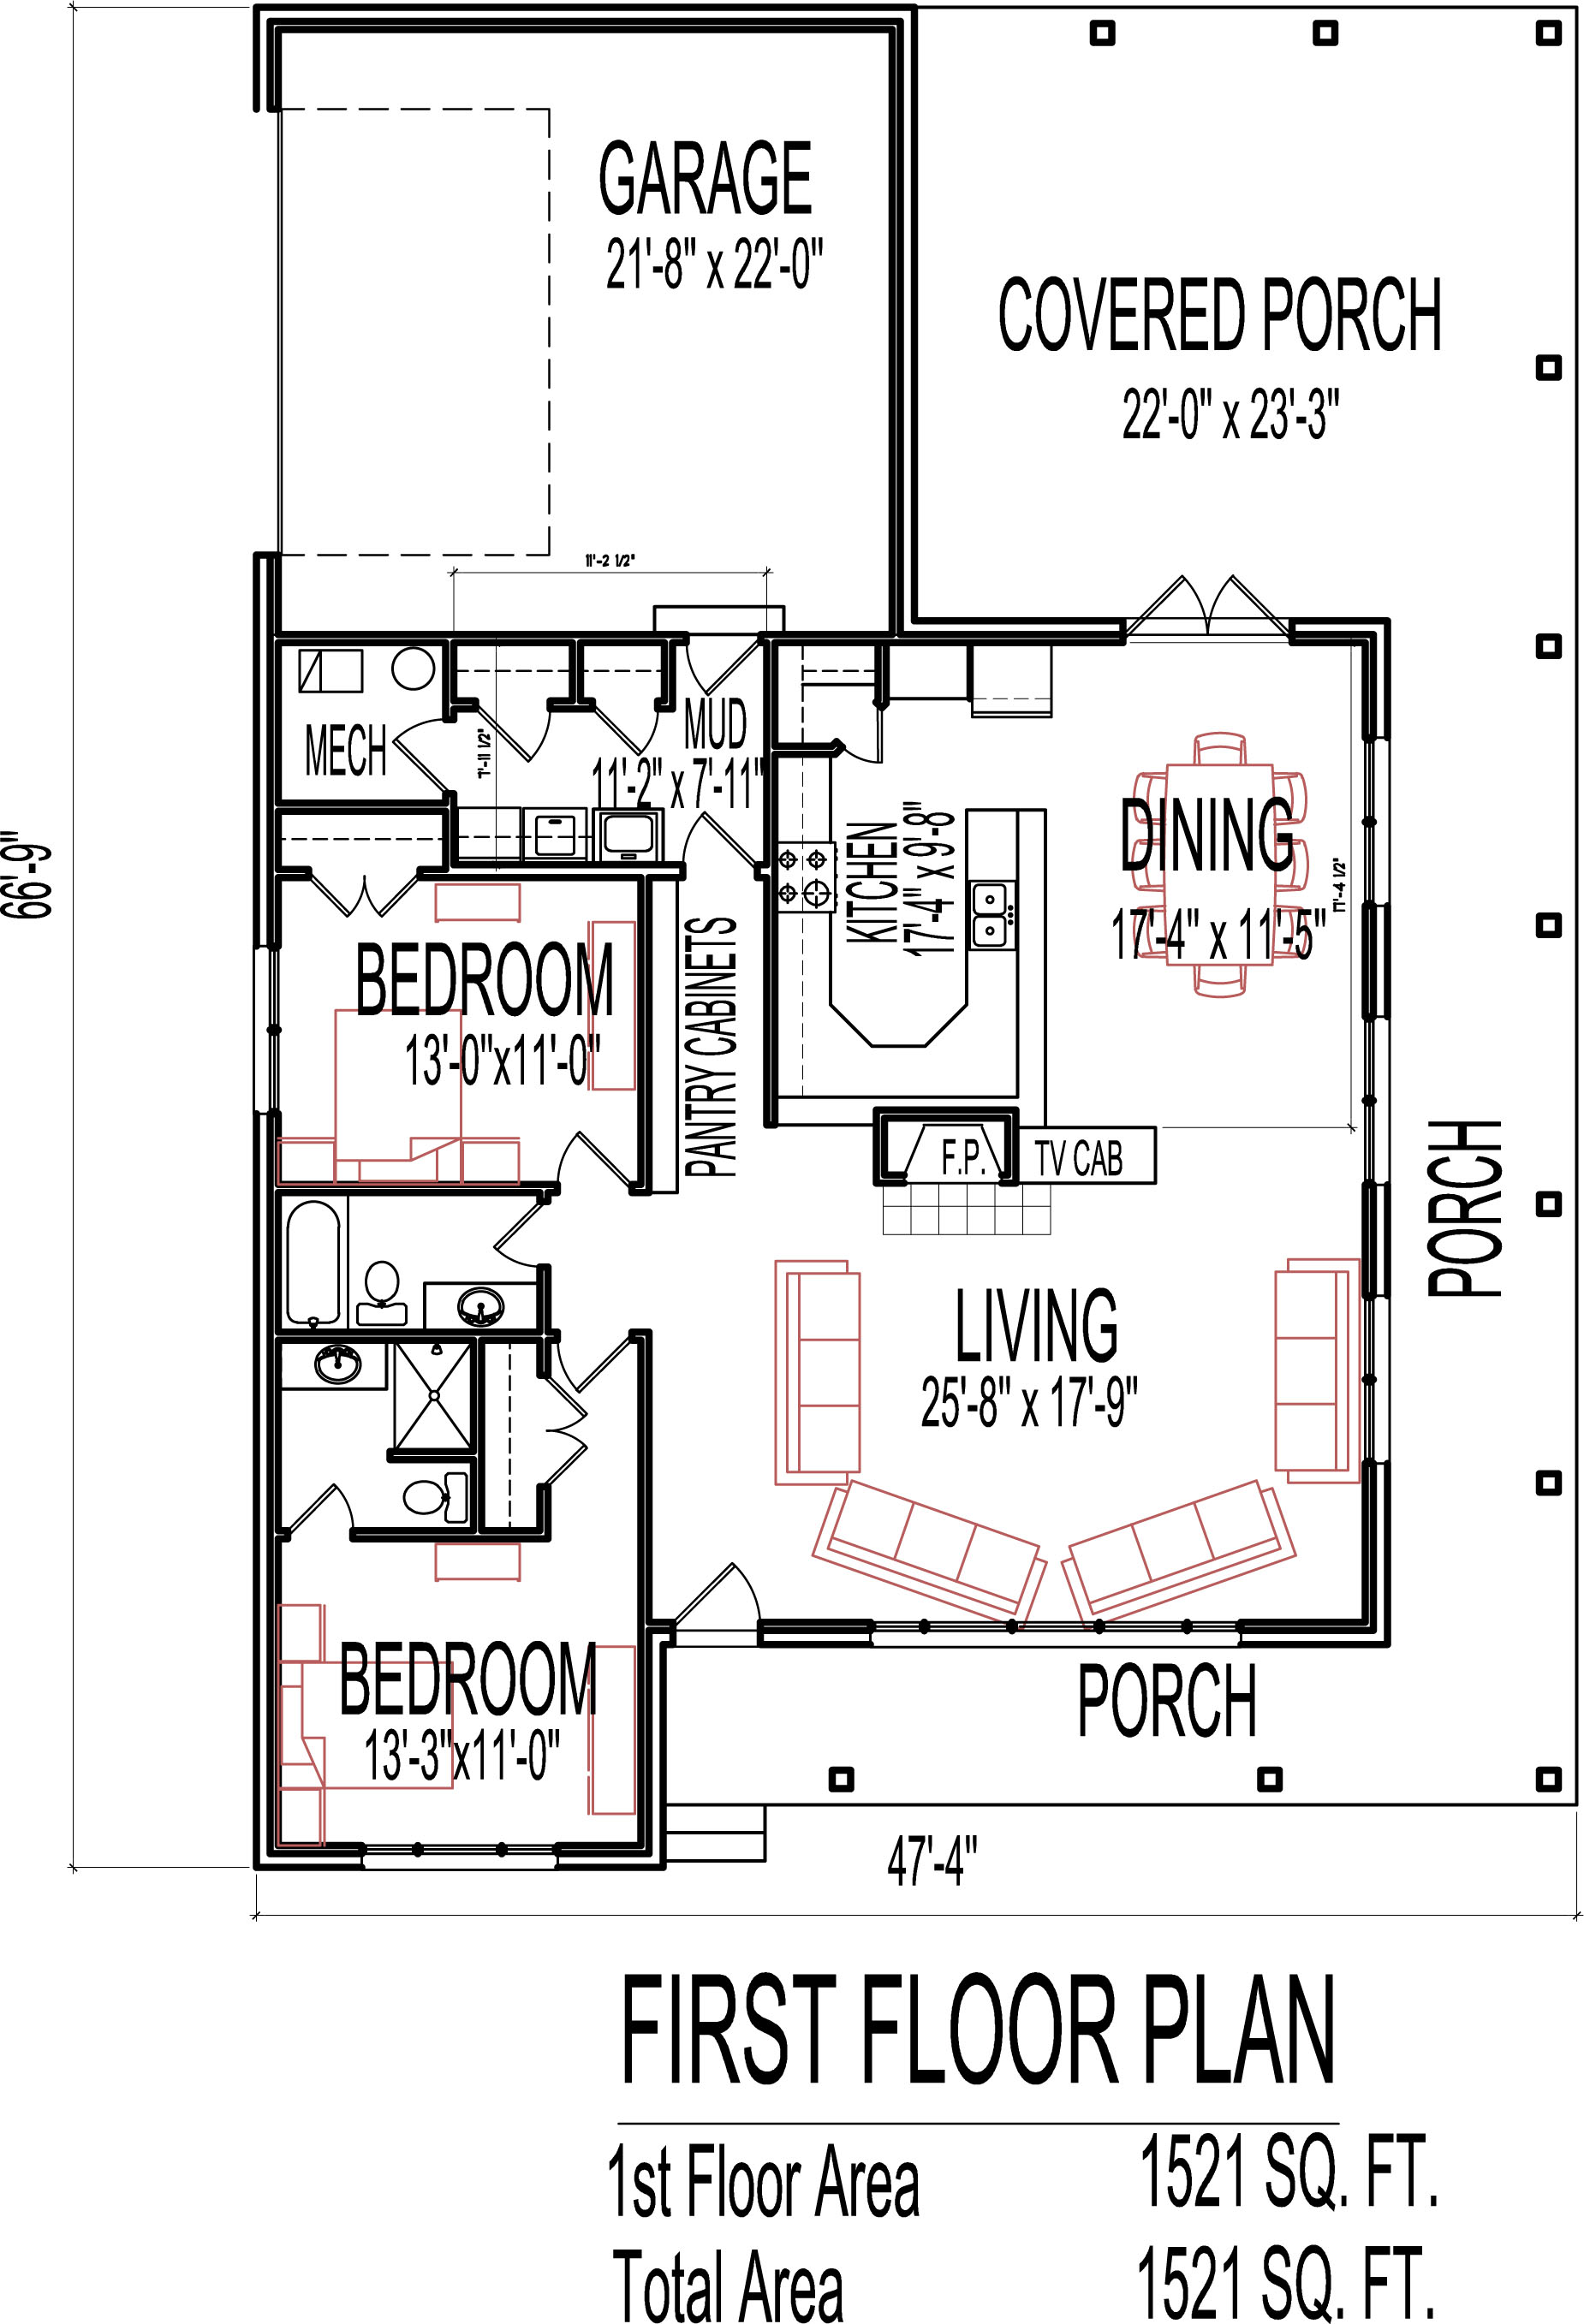 Stone Cottage House Floor Plans 2 Bedroom Single Story ... on narrow beach house designs, narrow house plan designs, narrow lake house designs,